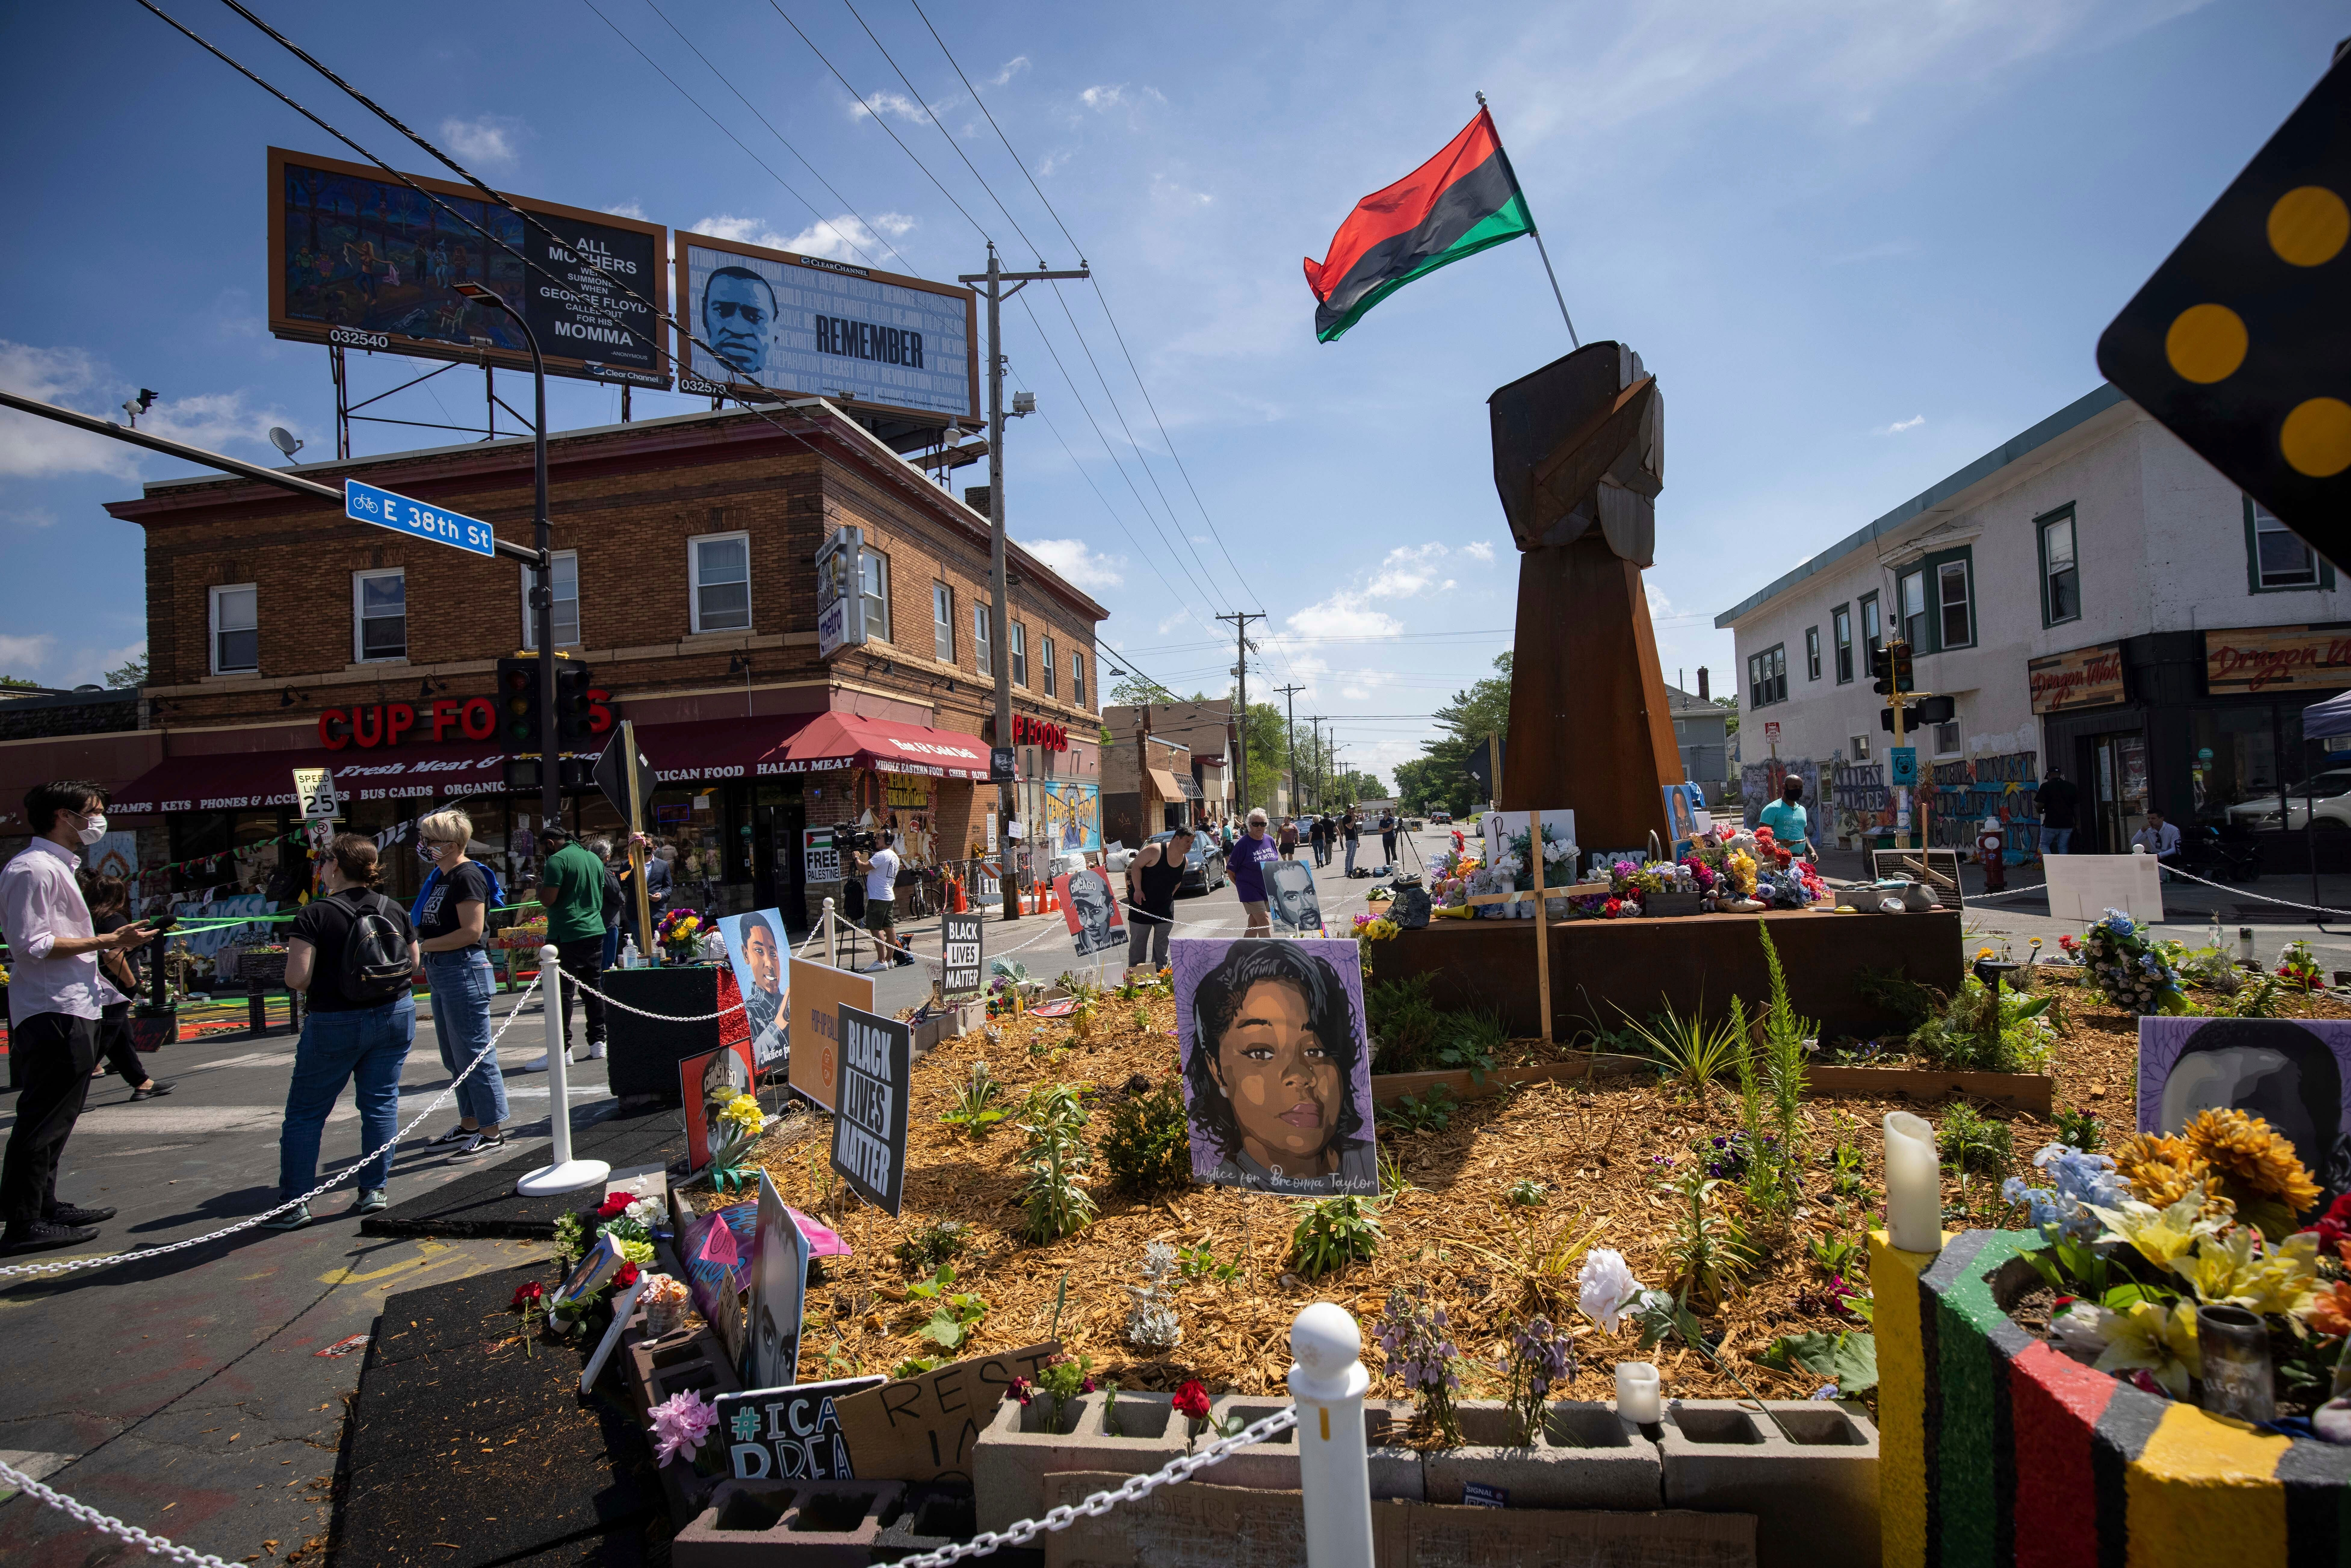 Workers reopen intersection where George Floyd died in Minneapolis despite activists  demands